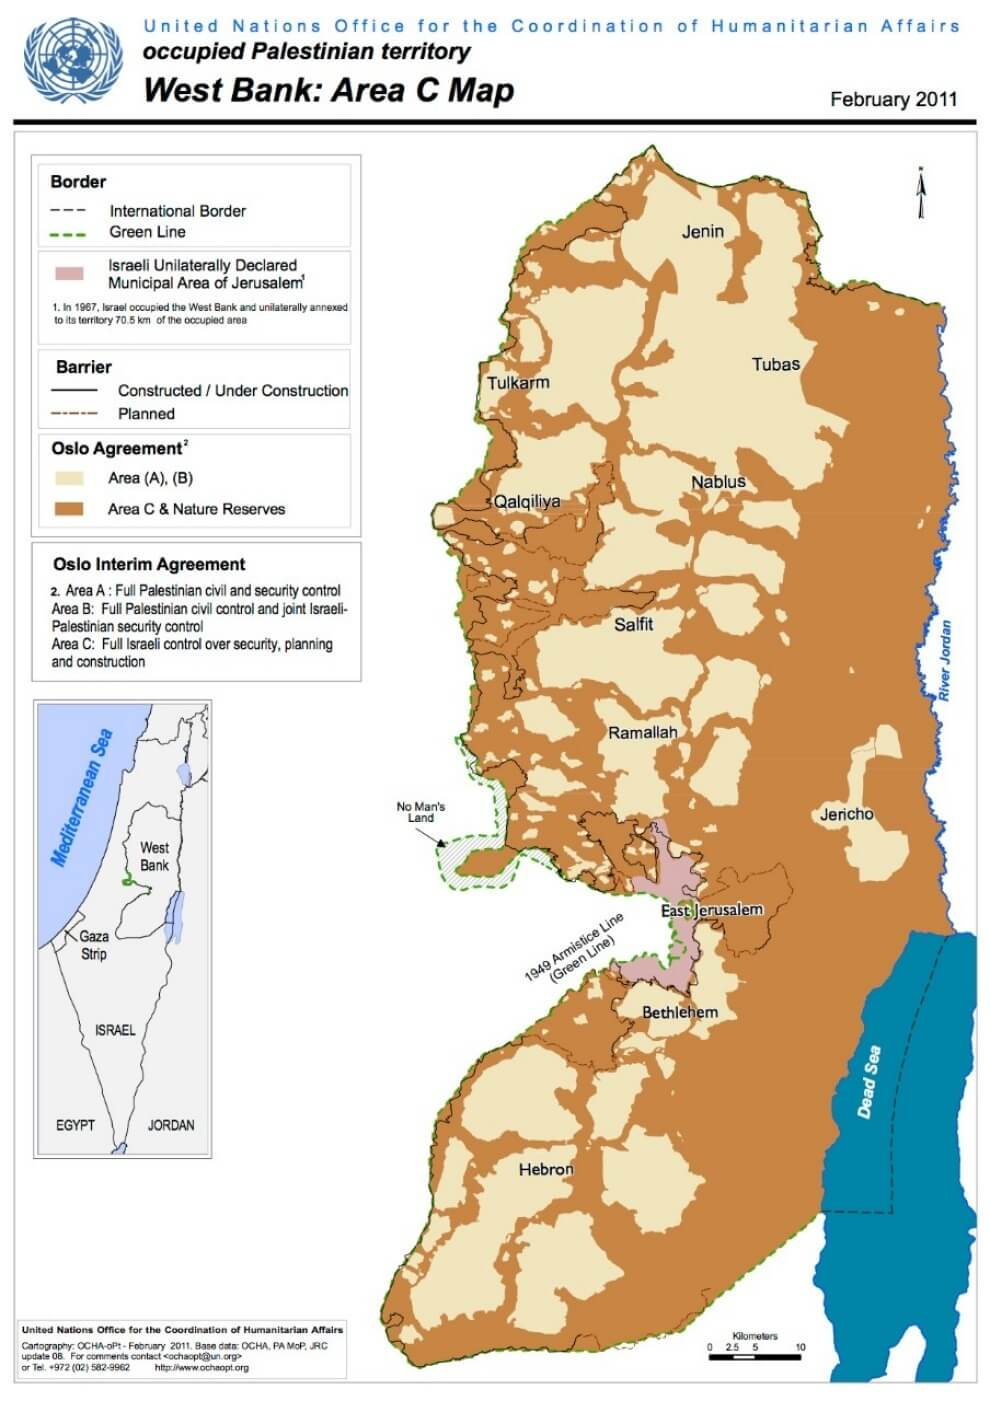 A map of Area C, the occupied Palestinian territory under the control of the Israeli military Credit: UN Office for the Coordination of Humanitarian Affairs